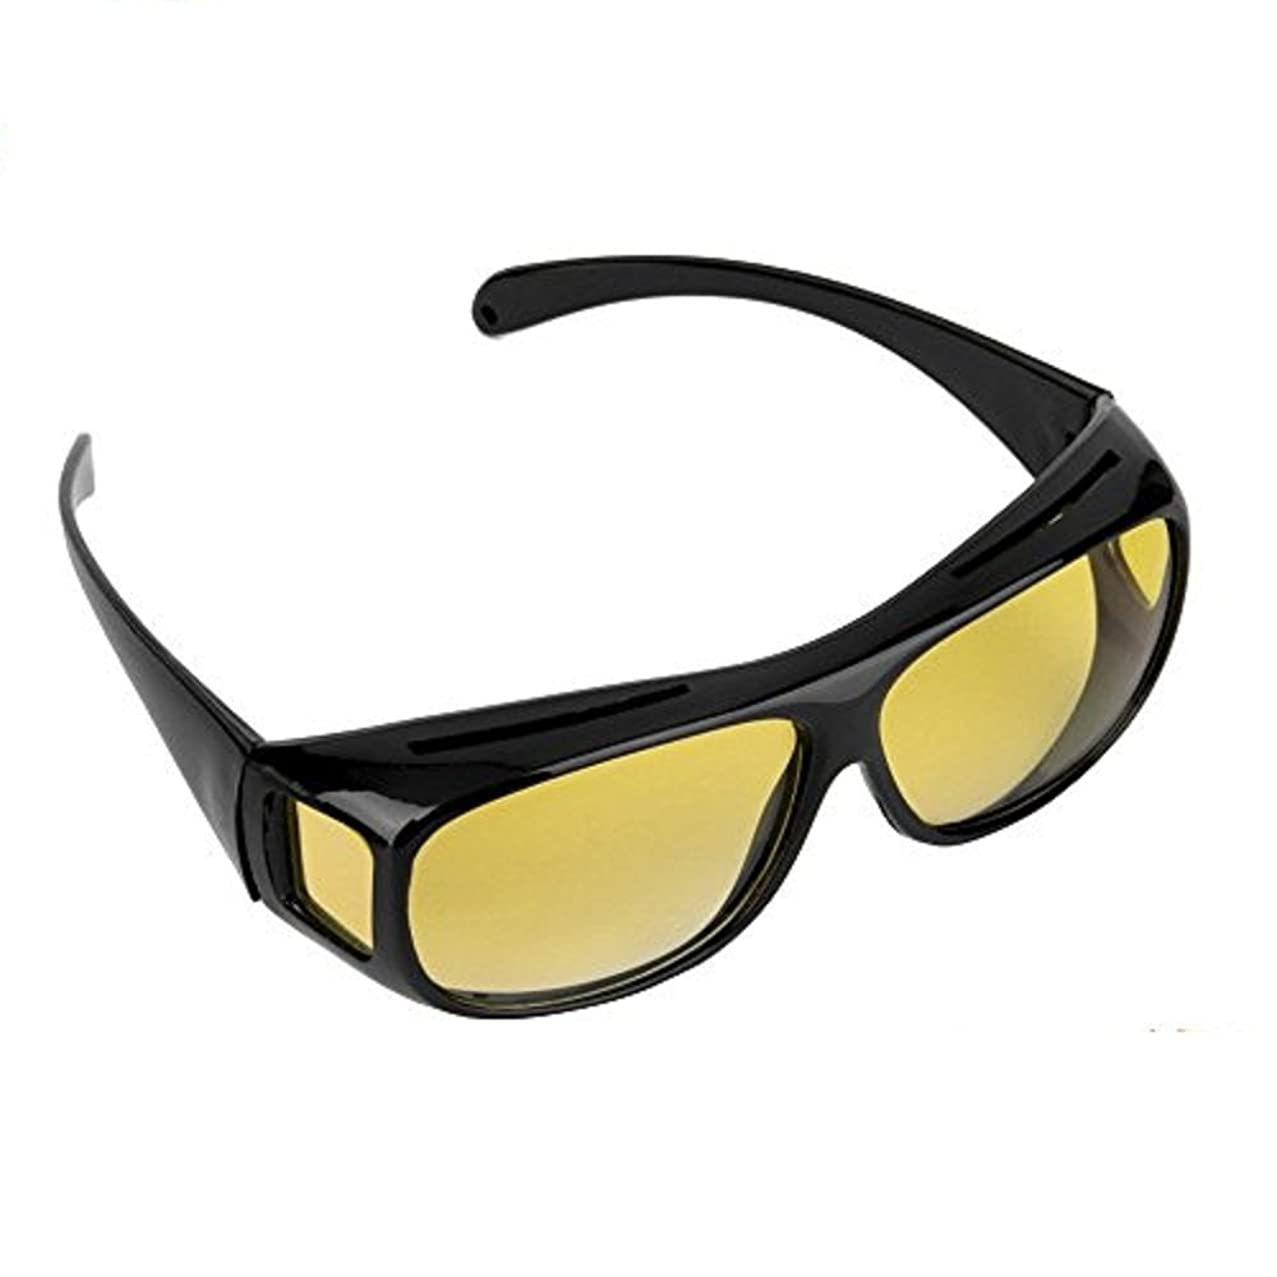 Night Vision Glasses Driving Polarized Black/Yellow Wrap Around Windproof Prescription Eyewear Unisex Sunglasses UV400 Protective Protection Glasses Goggles US Stock by Lucky Shop